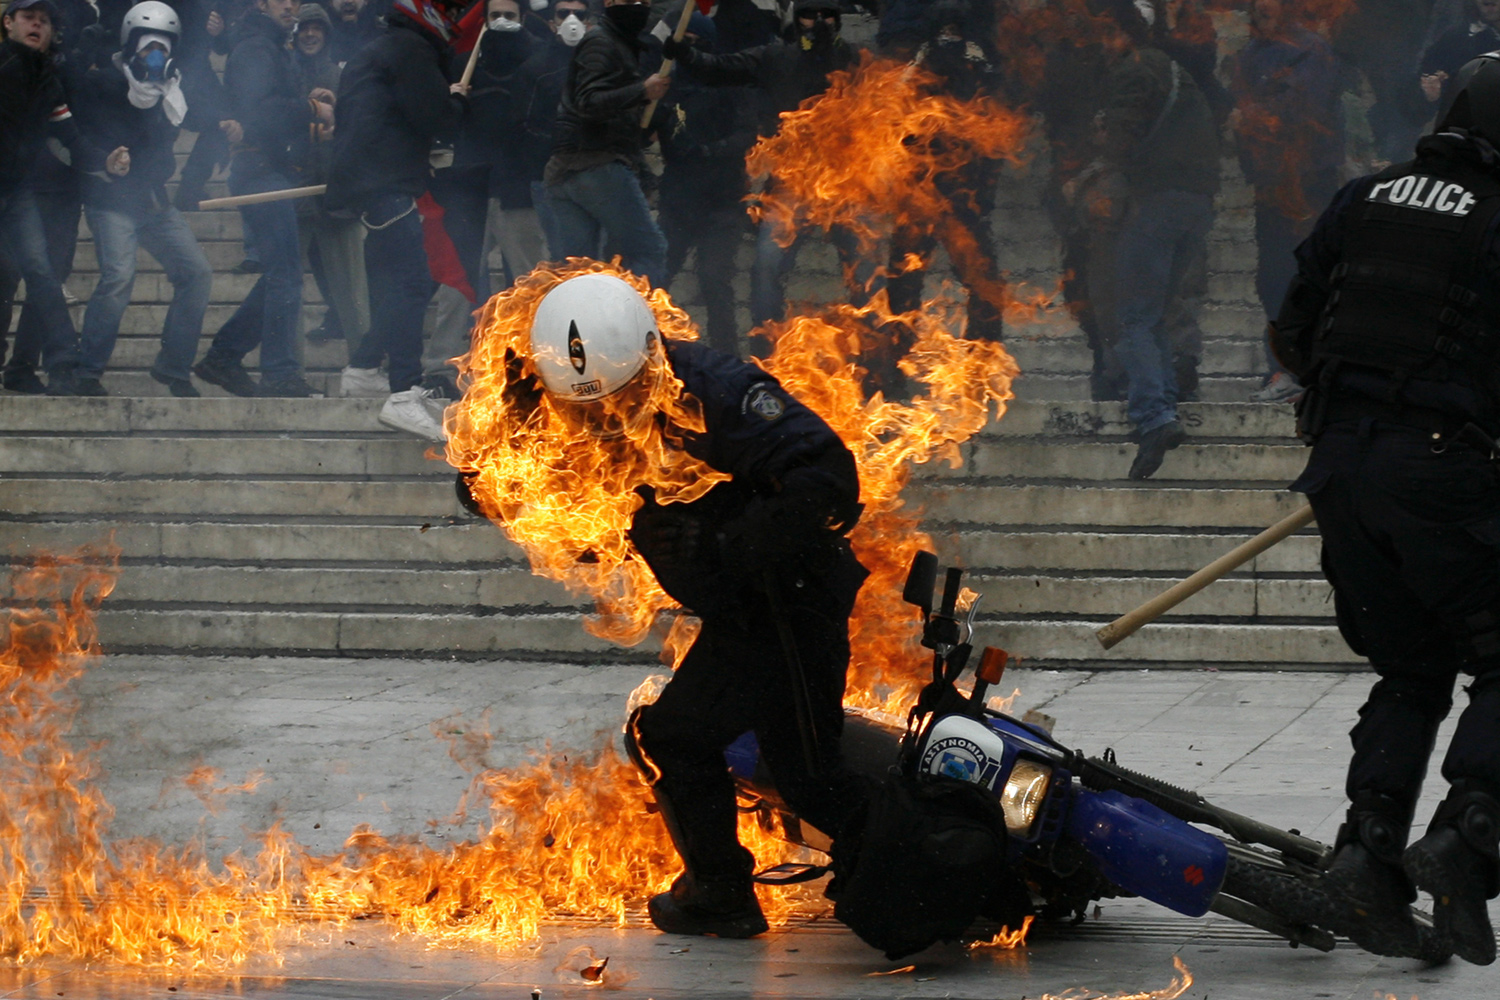 February 23, 2011. A policeman is seen in flames as he tries to escape after a petrol bomb was thrown at him during riots in front of the parliament in Athens, Greece.